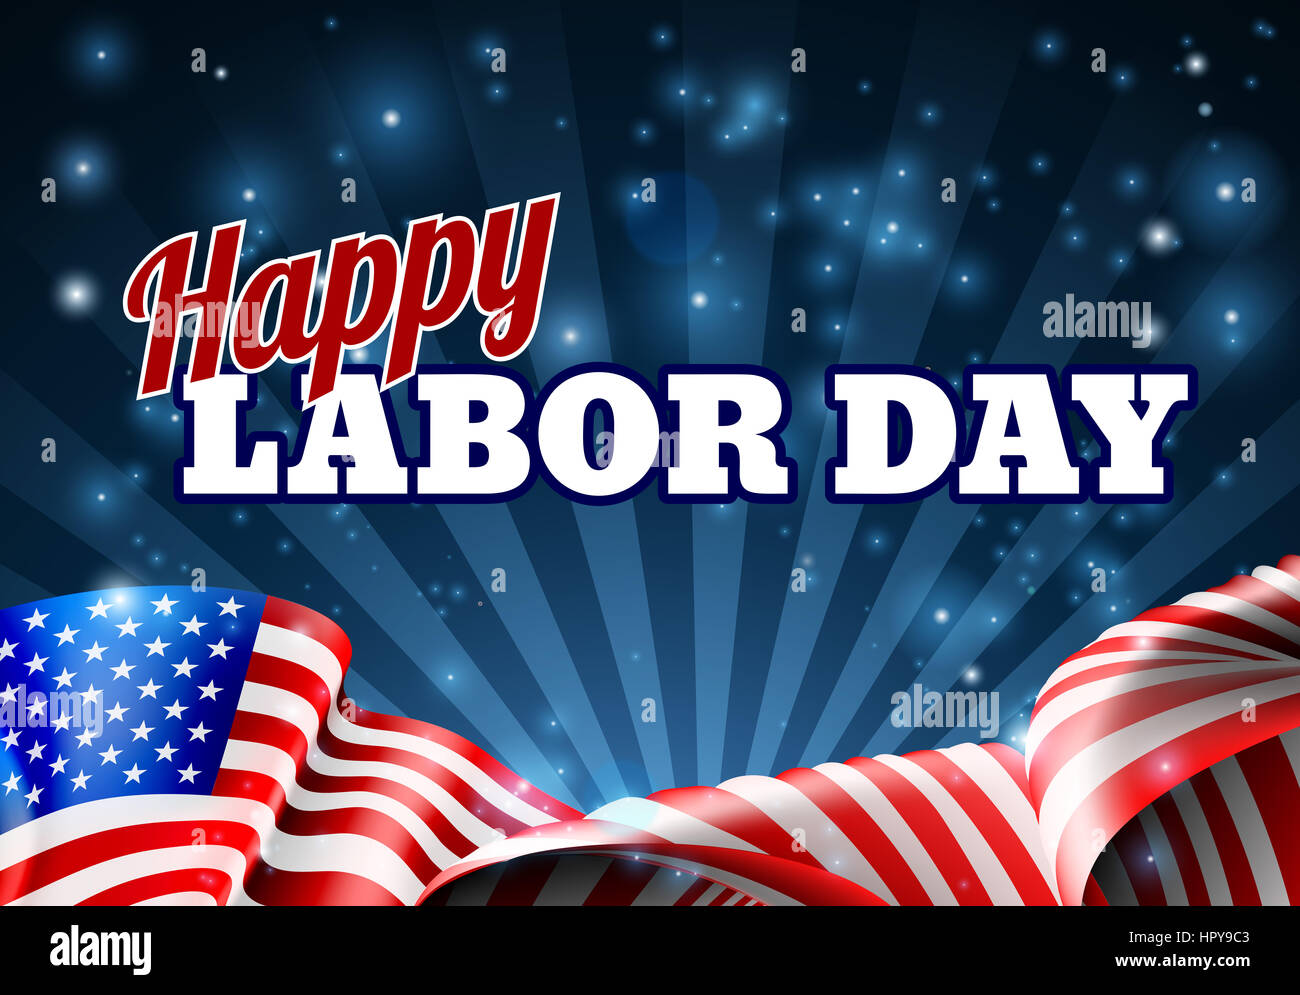 a happy labor day background design with an american flag banner